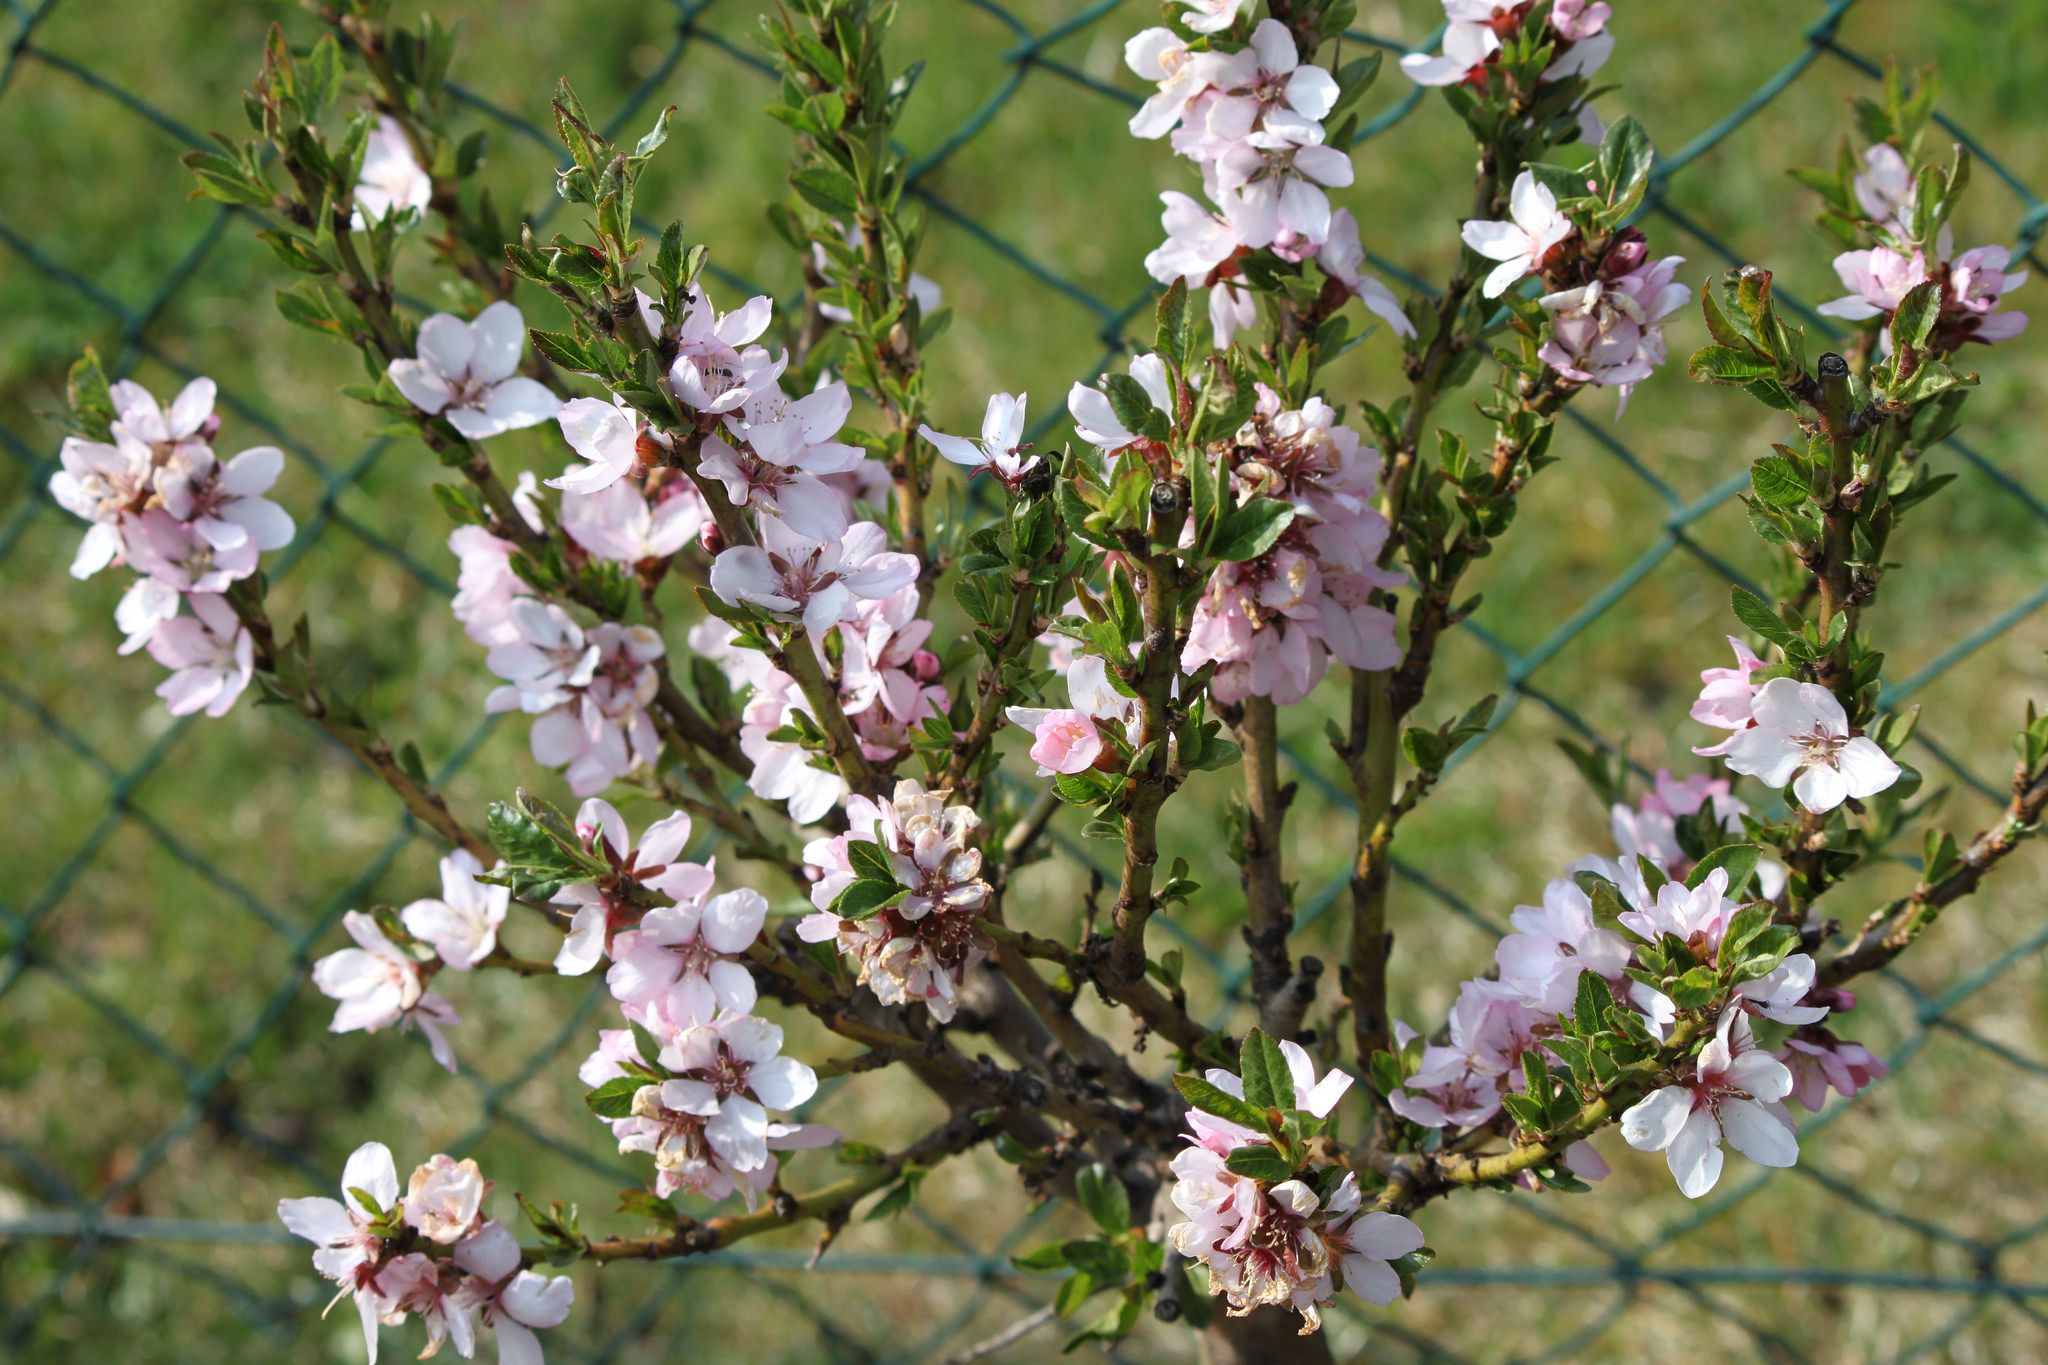 Dwarf Flowering Almond Bush Has Giant Impact In Spring